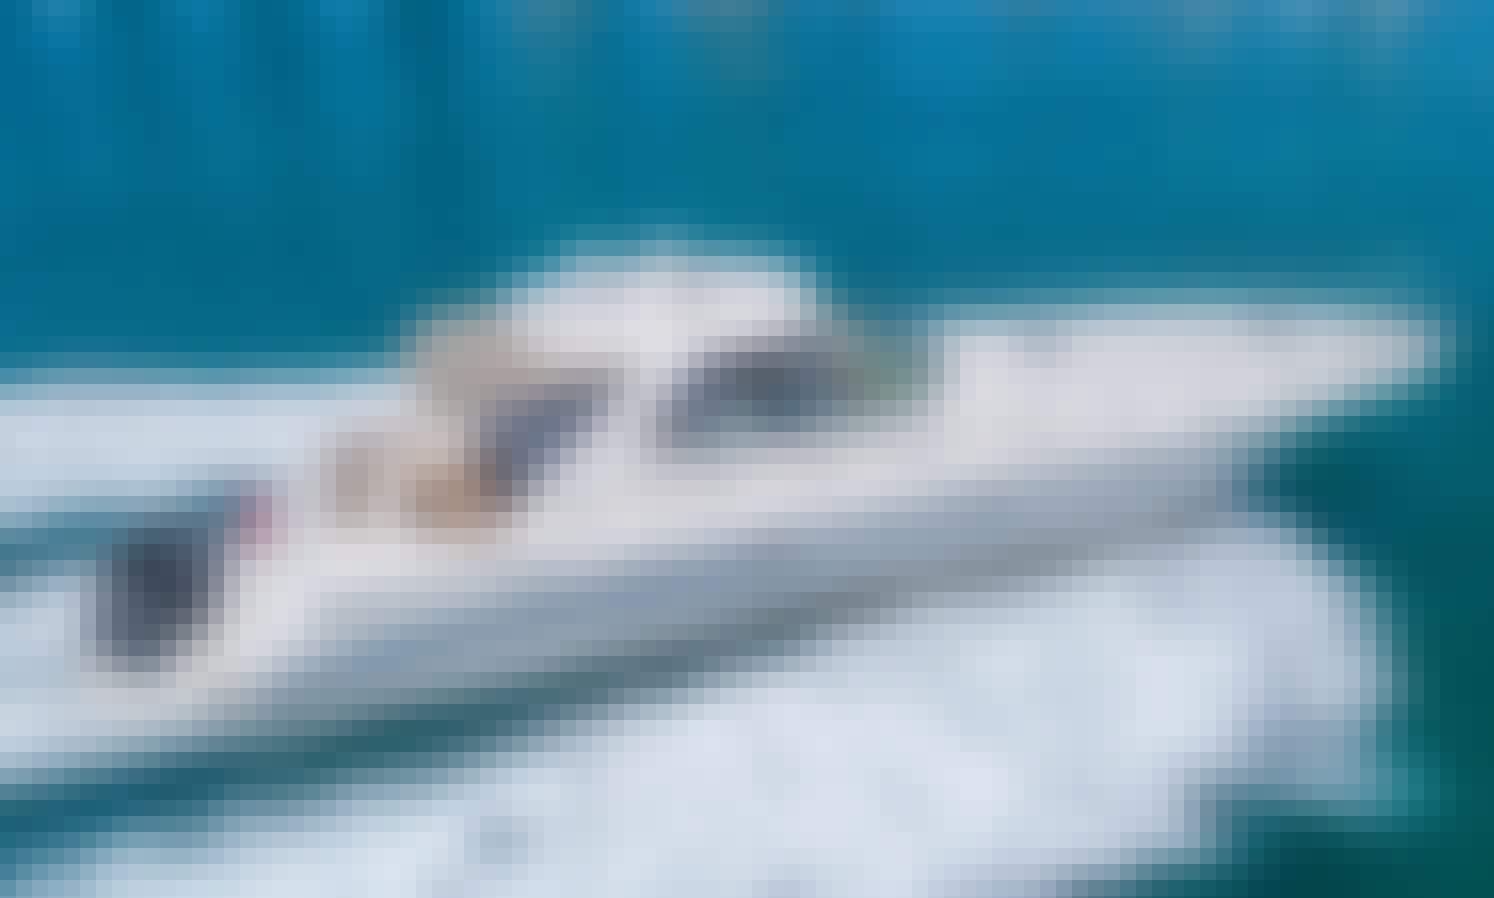 55' SEA RAY - Charter for Up to 13 Passengers in Miami